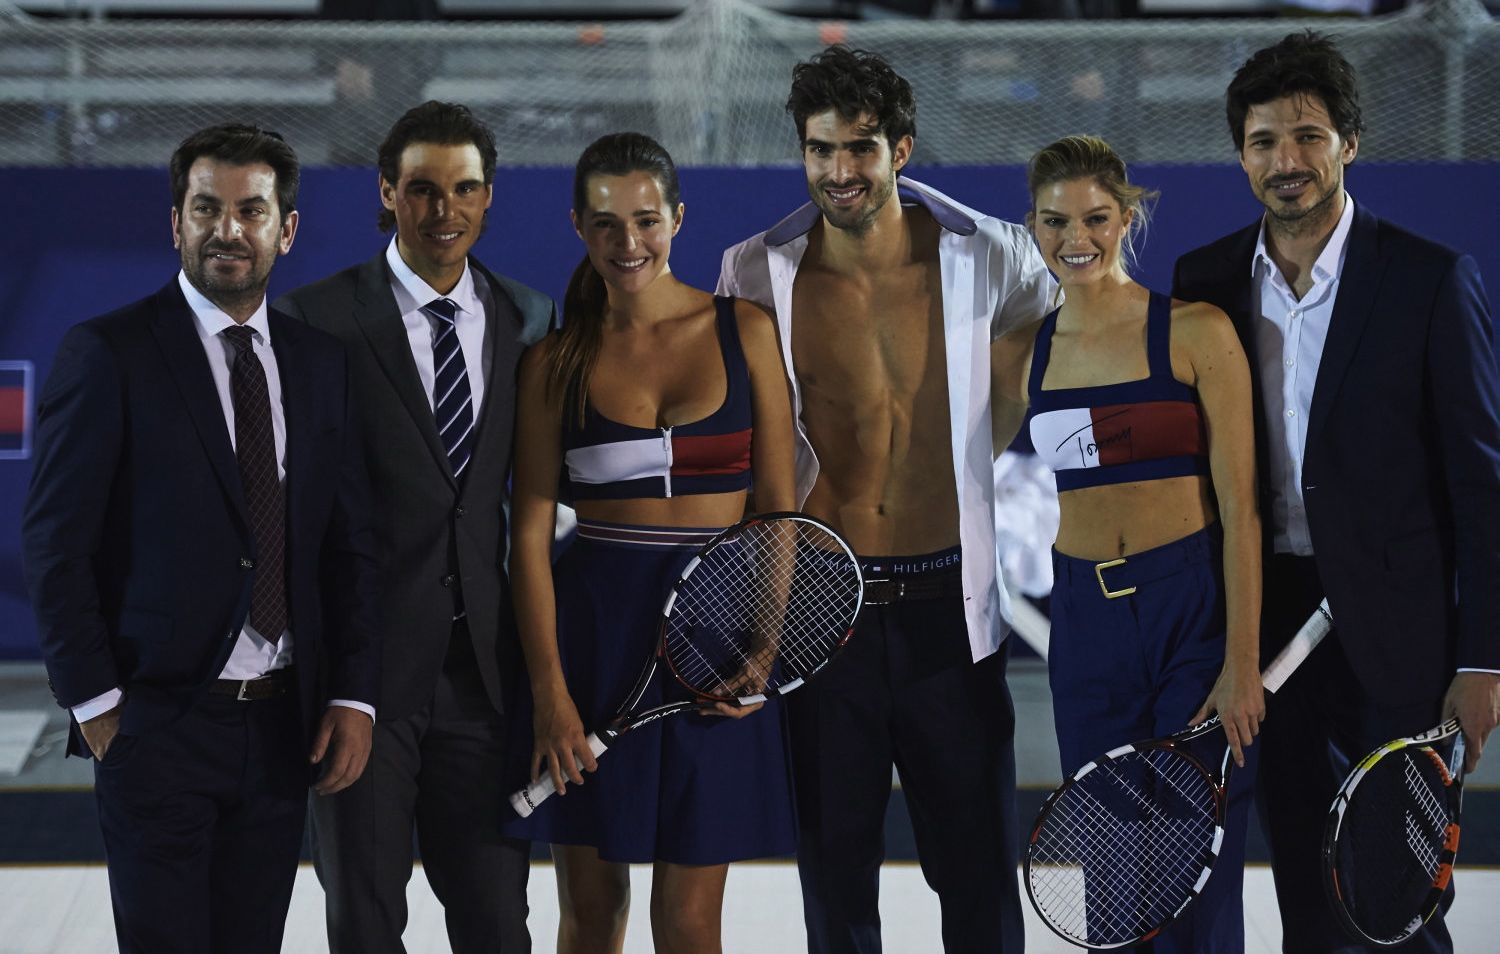 Tommy Hilfiger promotional event, in Madrid, featuring tennis pro Rafael Nadal